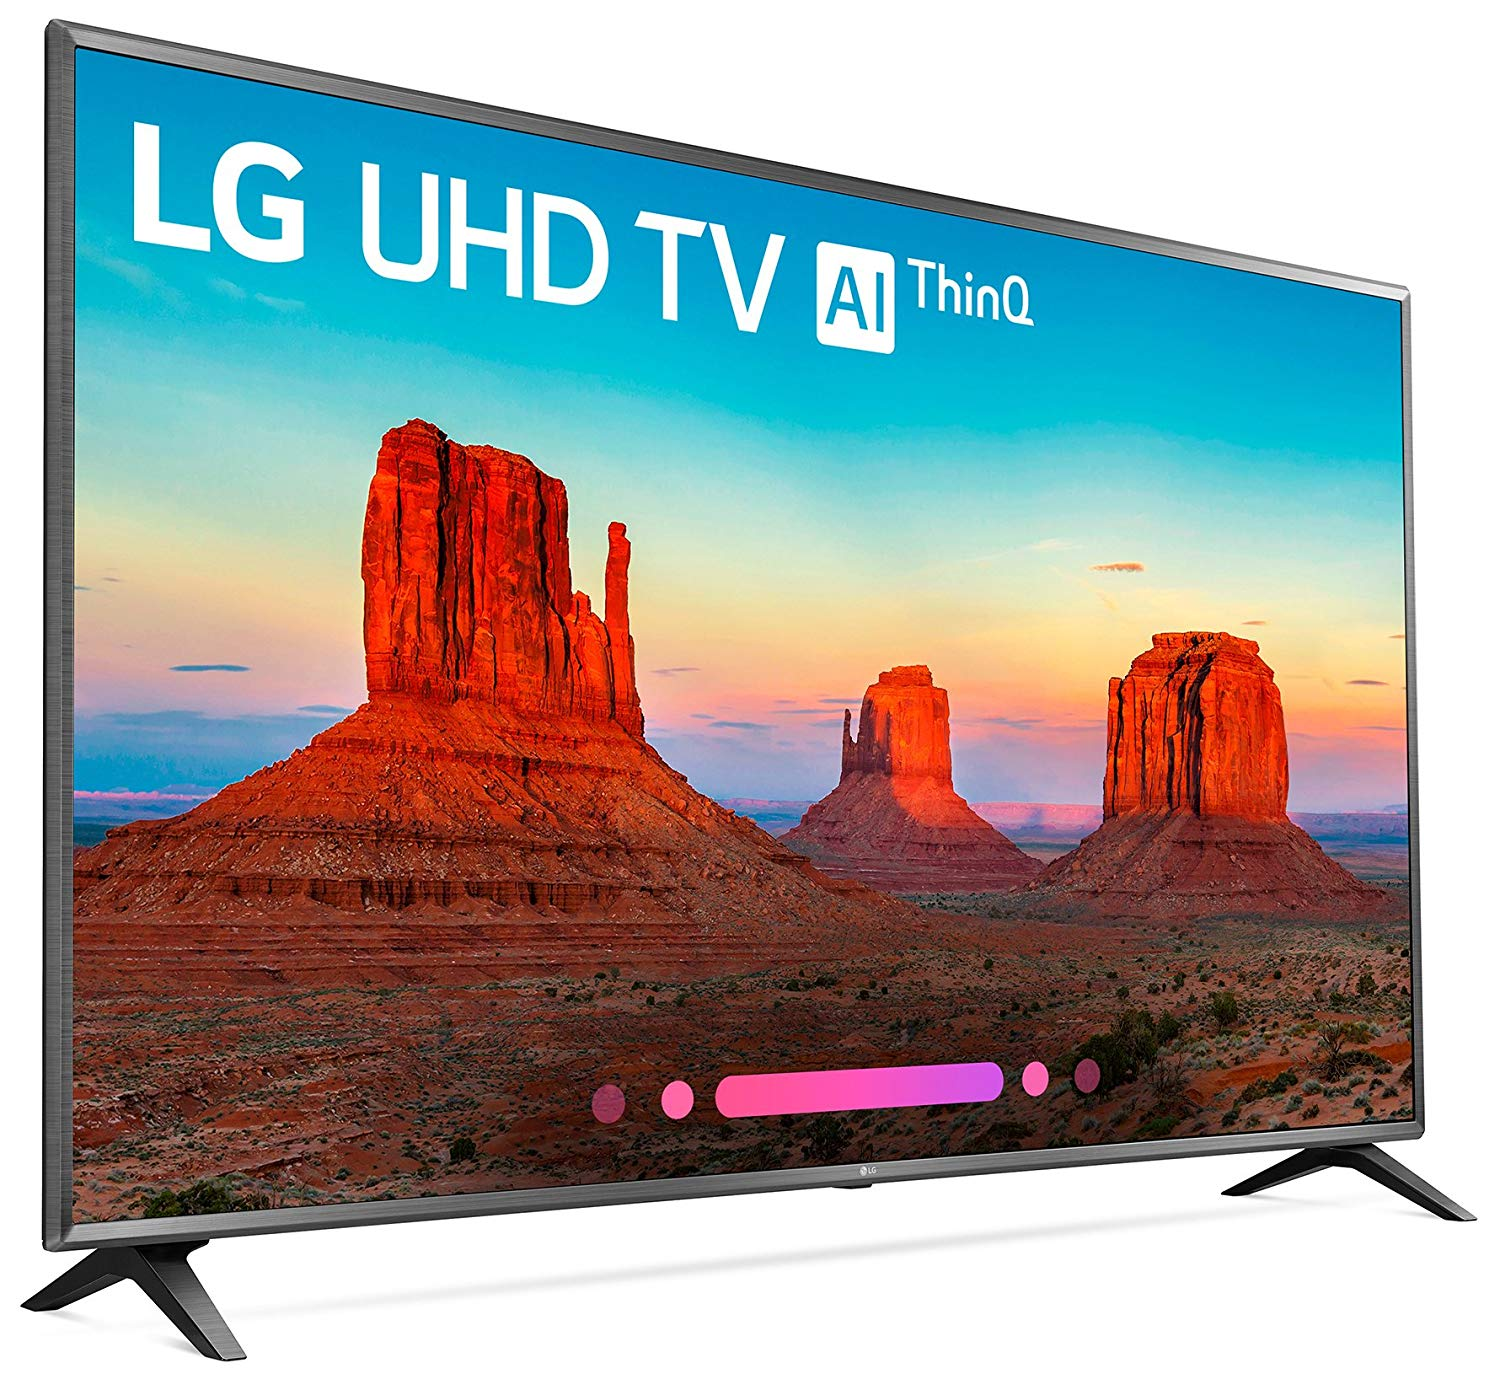 "75"" LG TV that works with Google Home.  This smart 4K will work with compatible Google Home devices like the Google Home Hub and Google Home Mini to allow for full voice control of your TV."